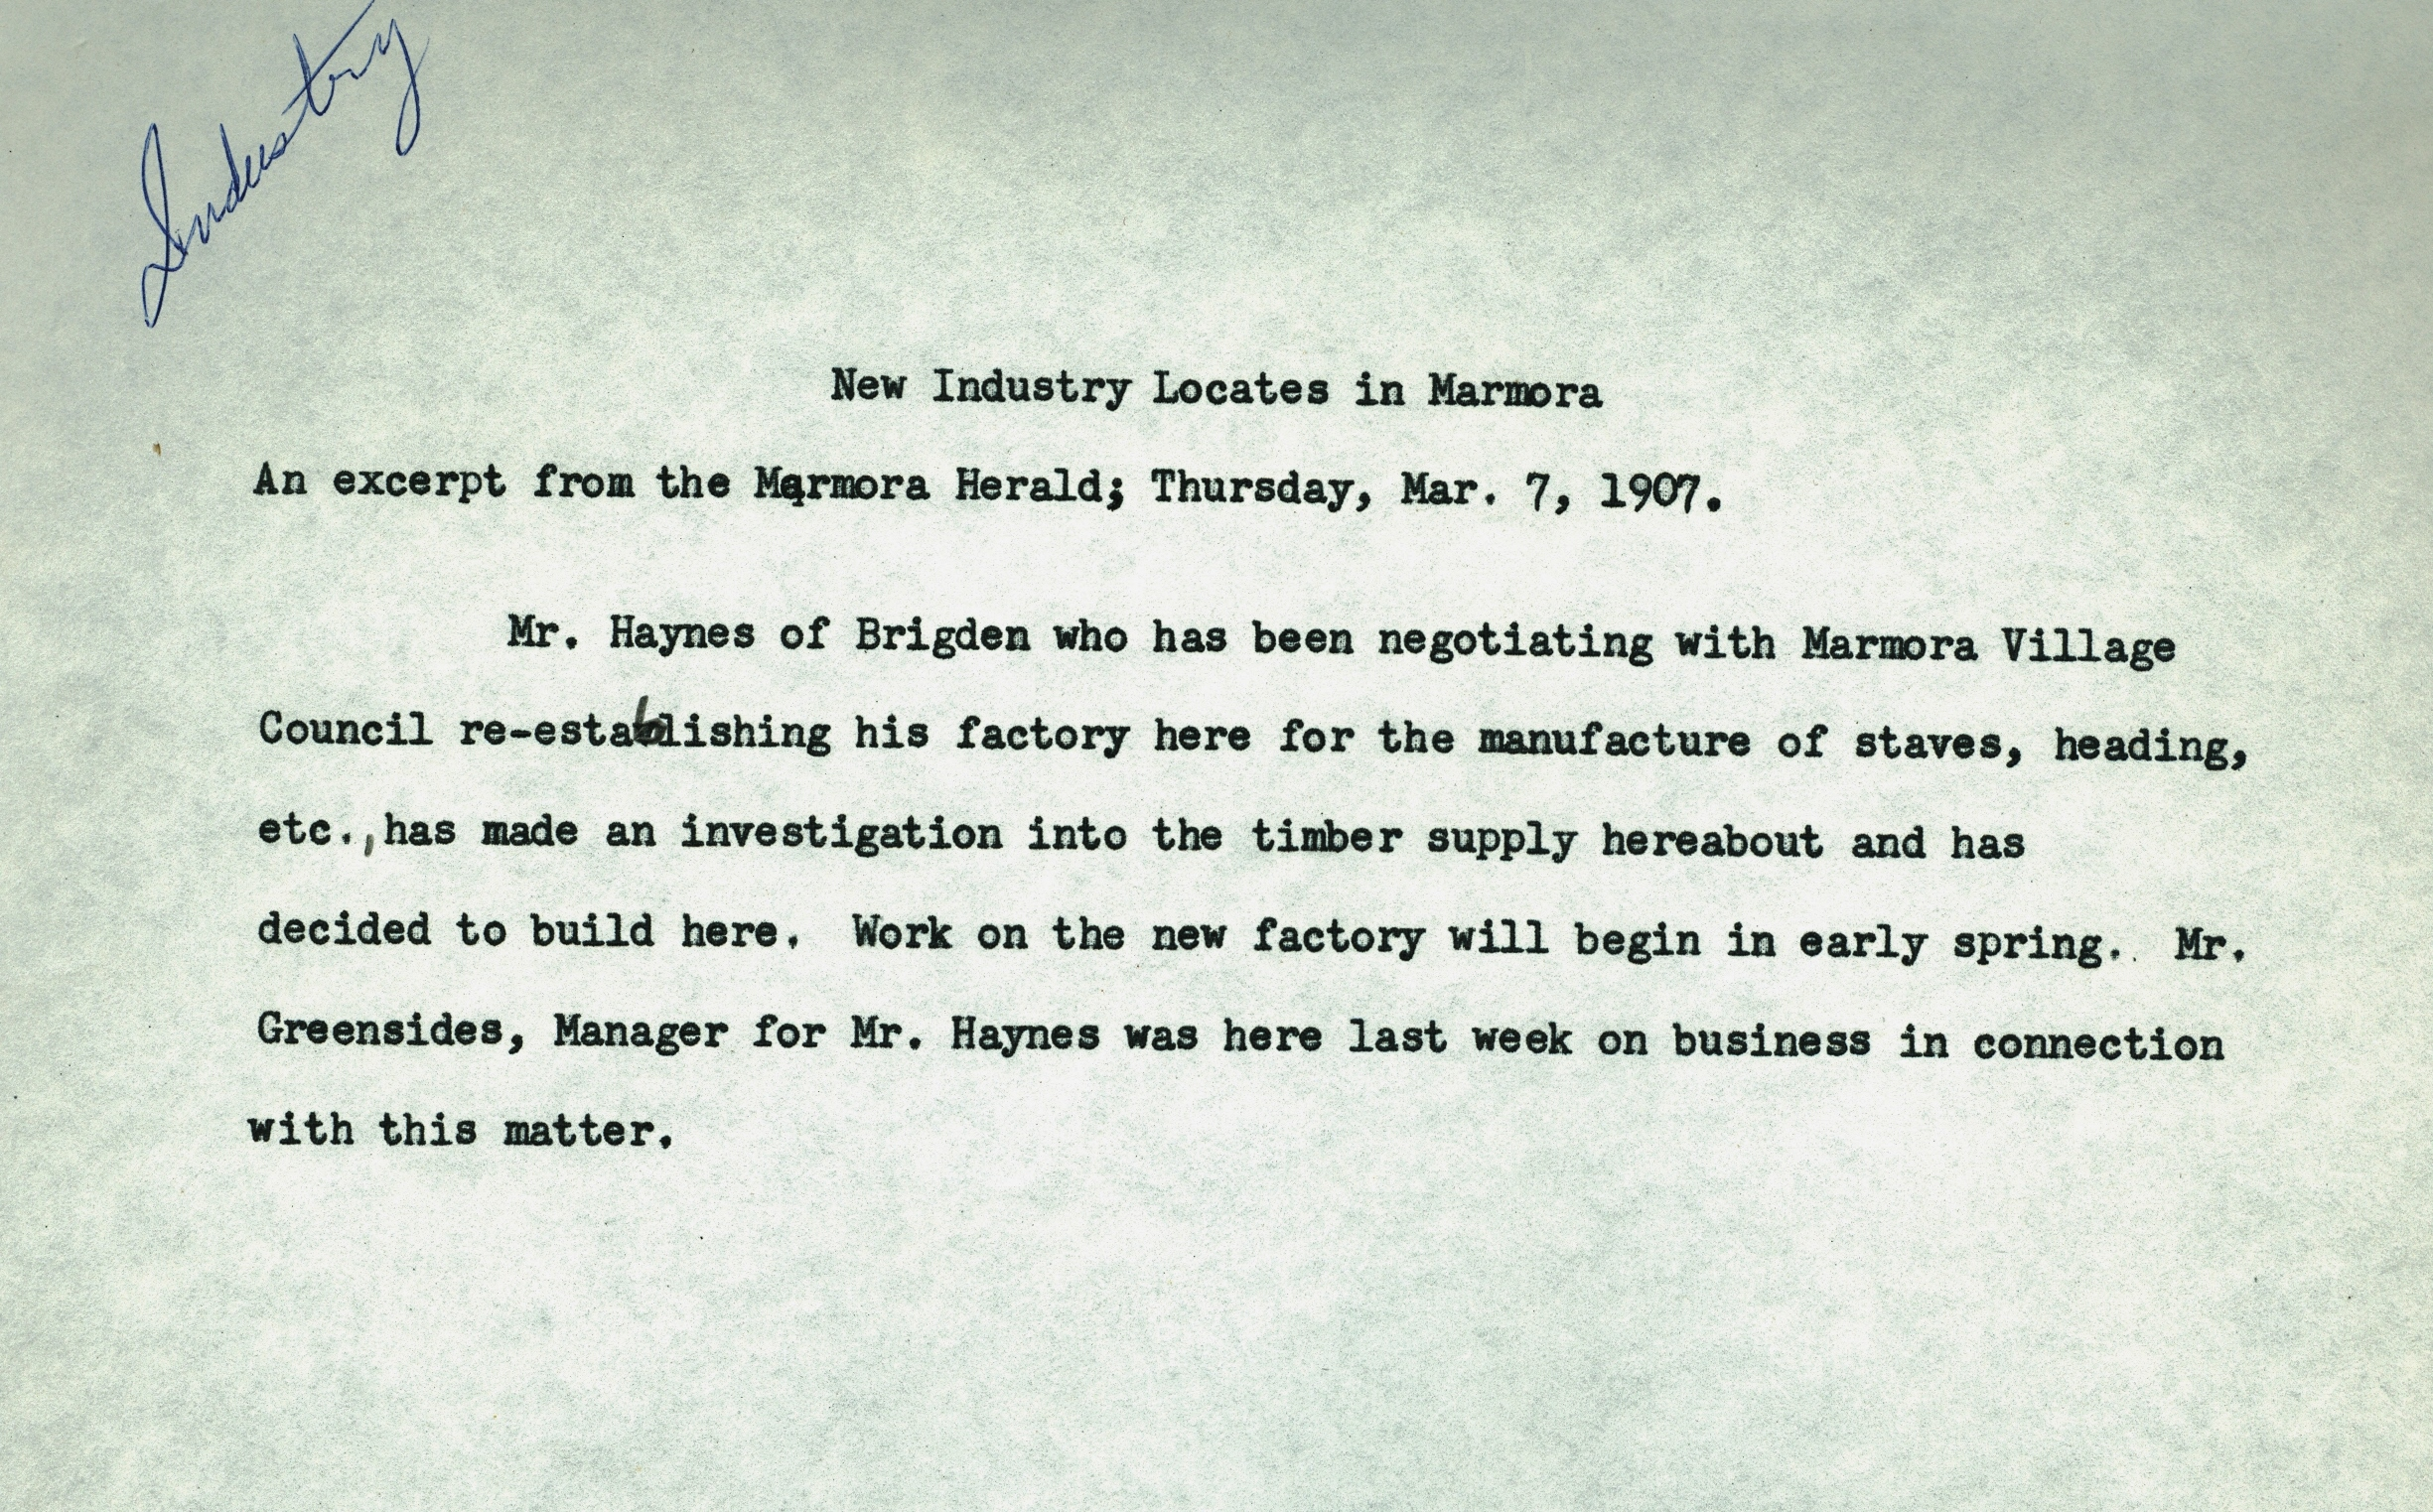 """Marmora herald, mar 2, 1907 - """"On Friday the frame work of Haynes and co.' s new stave mill was raised. It is 100 by 300 feet with a lean-to on each side running full length. The herald further reported that the stave mill was employing 20-30 men in 1911."""